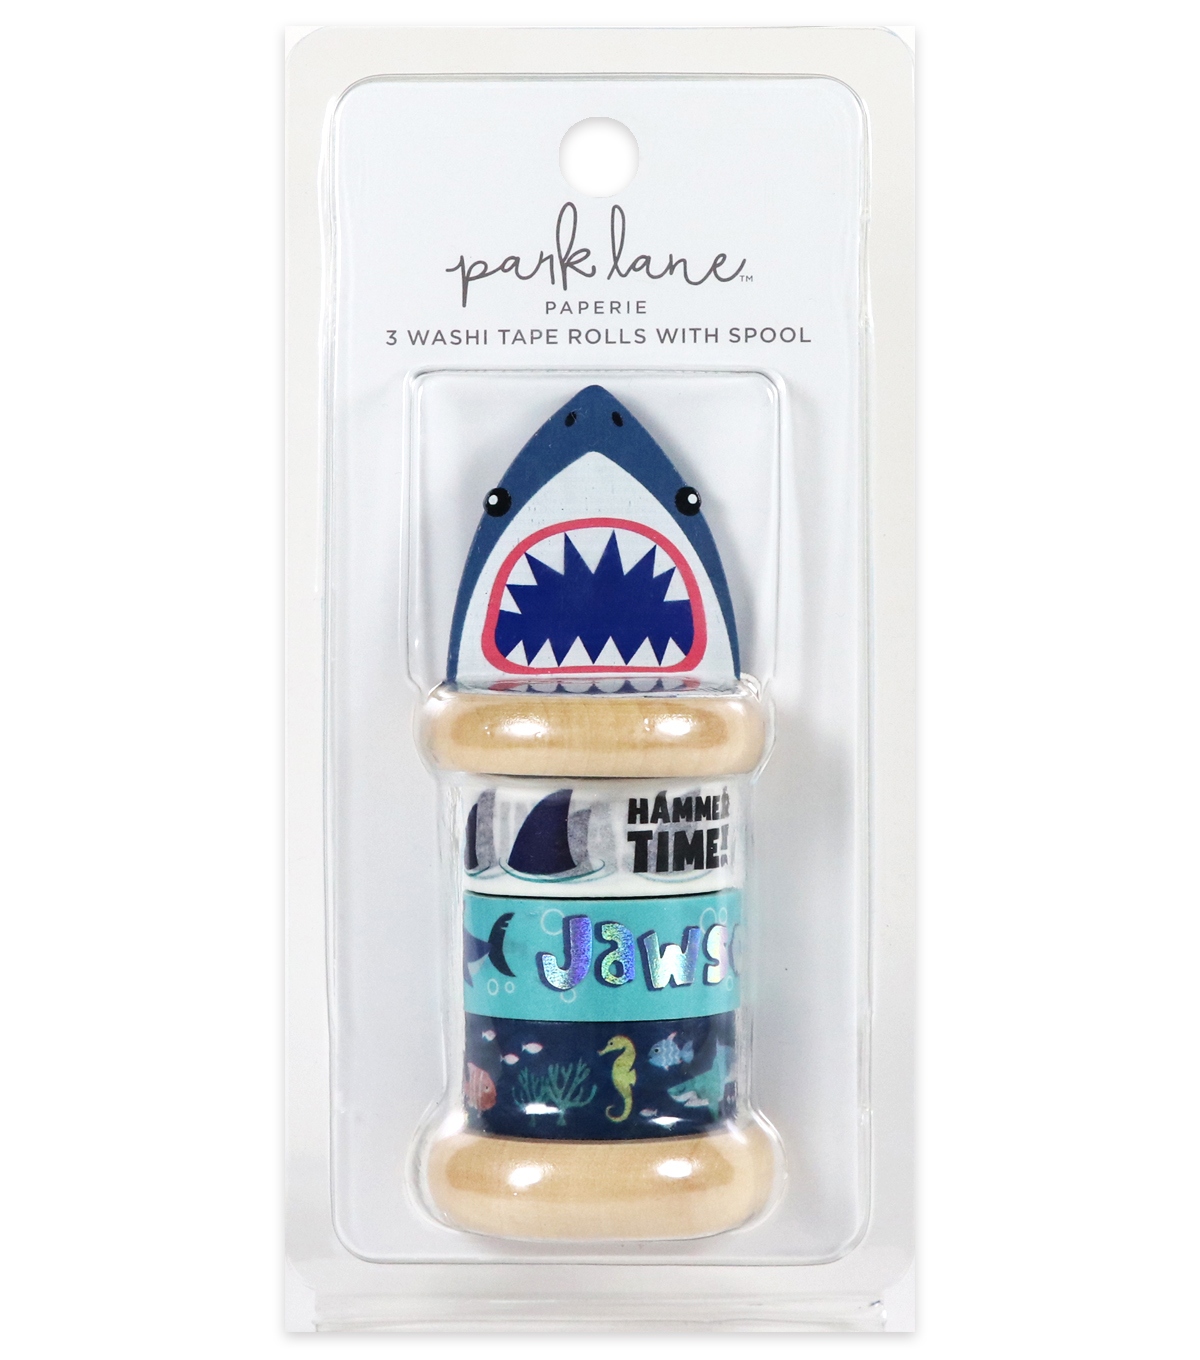 Park Lane Paperie 3 pk Washi Tape Rolls with Spool-Shark